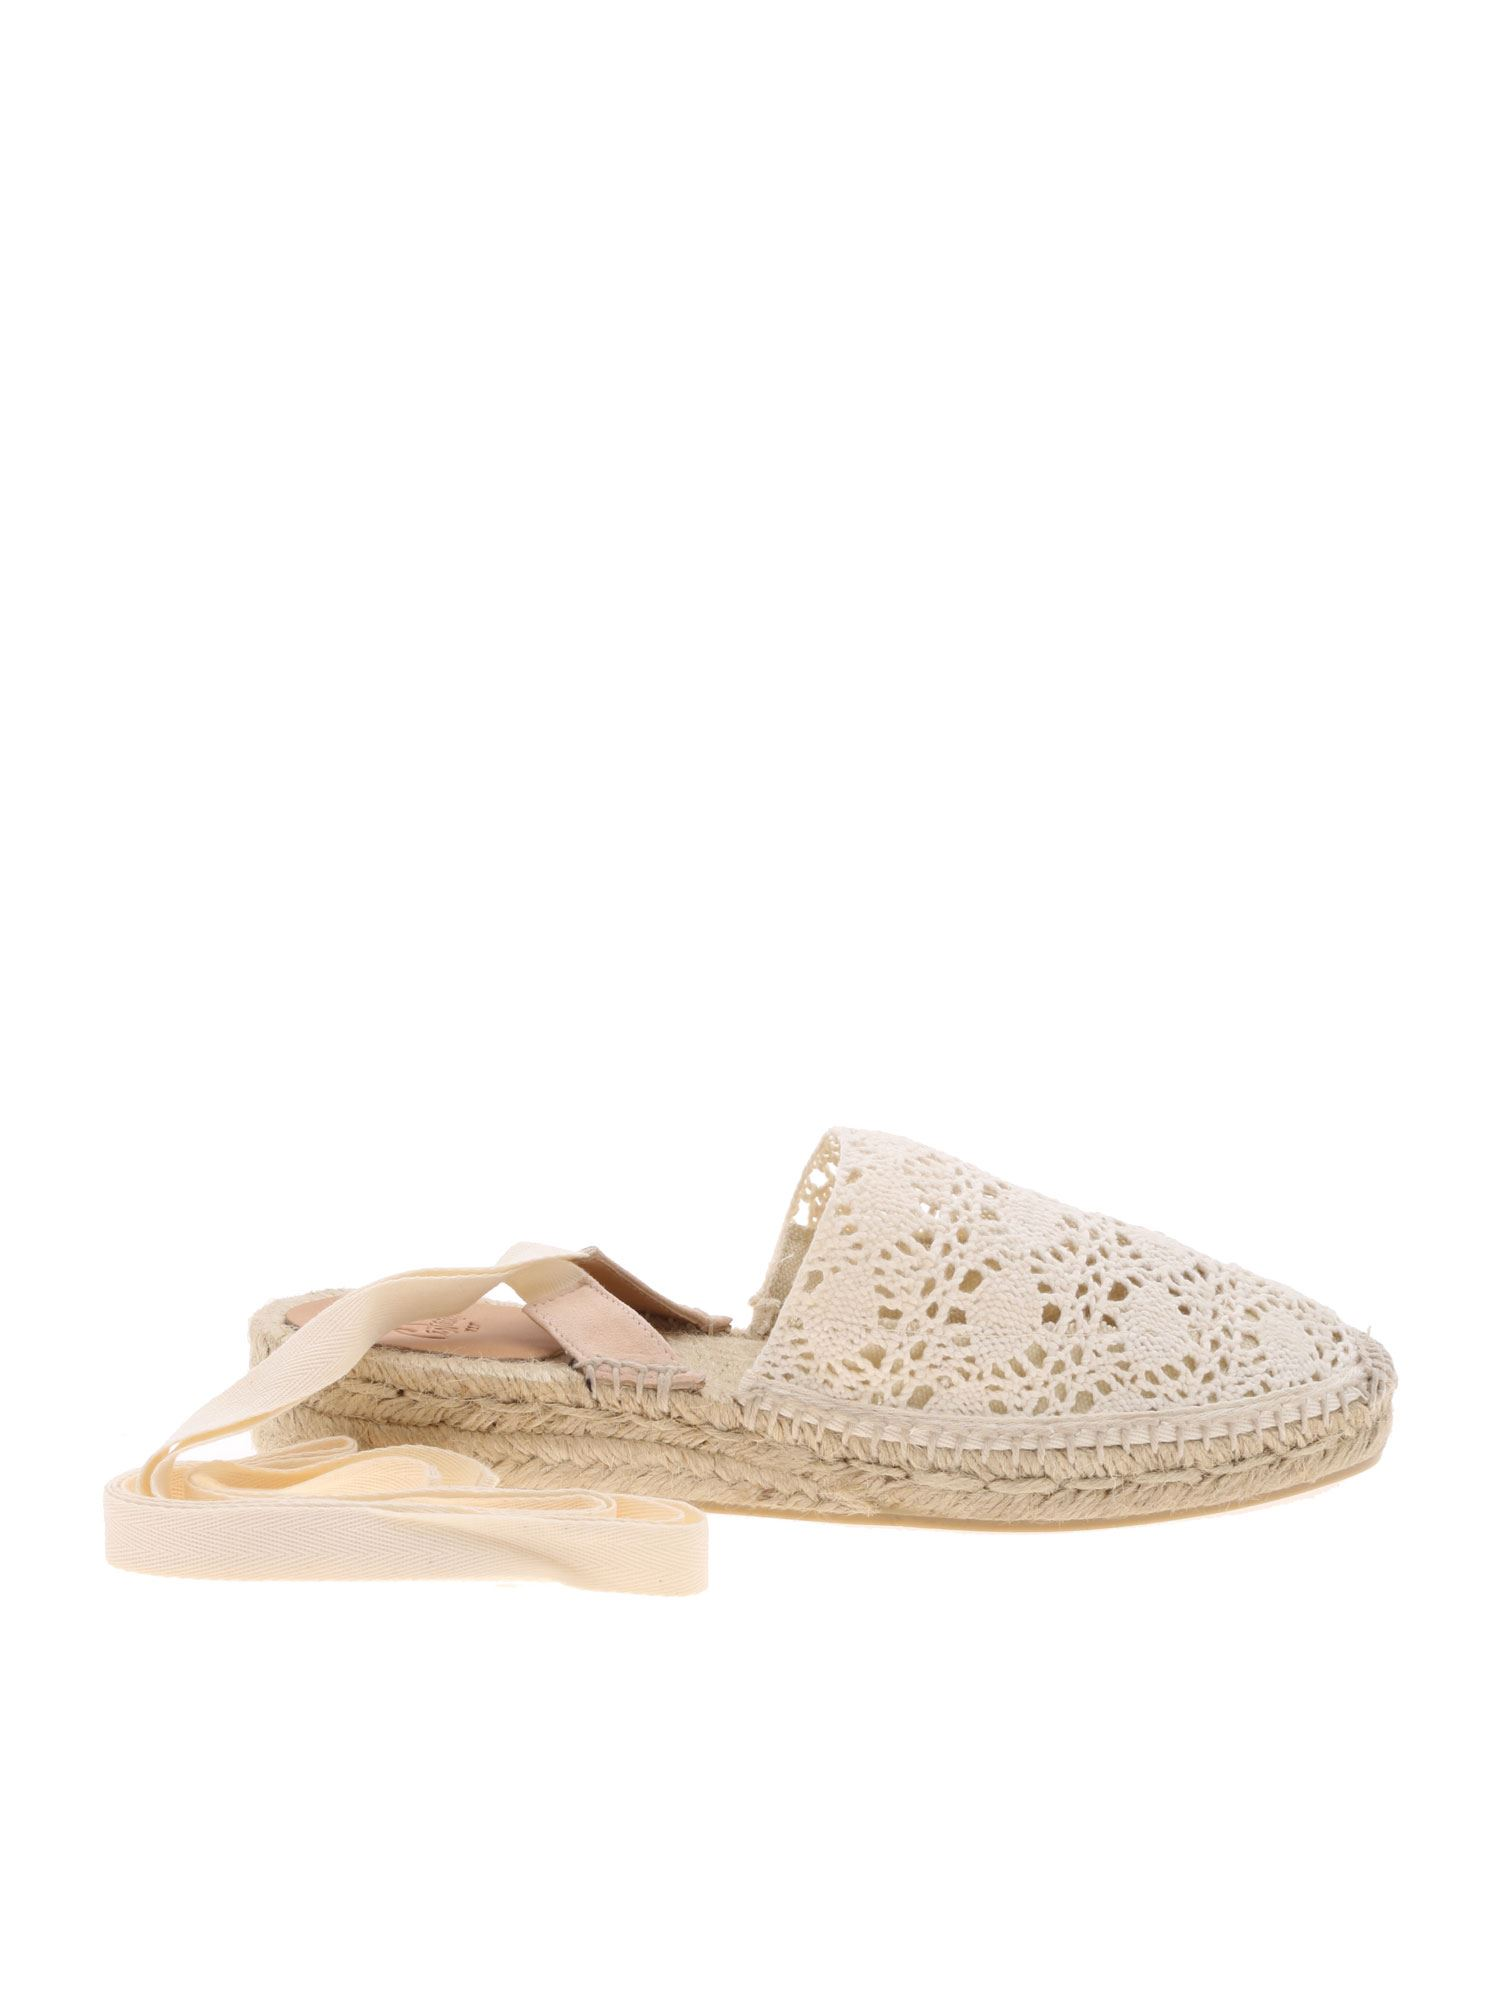 Castaã±er Low heels GABE ESPADRILLES IN LACE IN IVORY COLOR